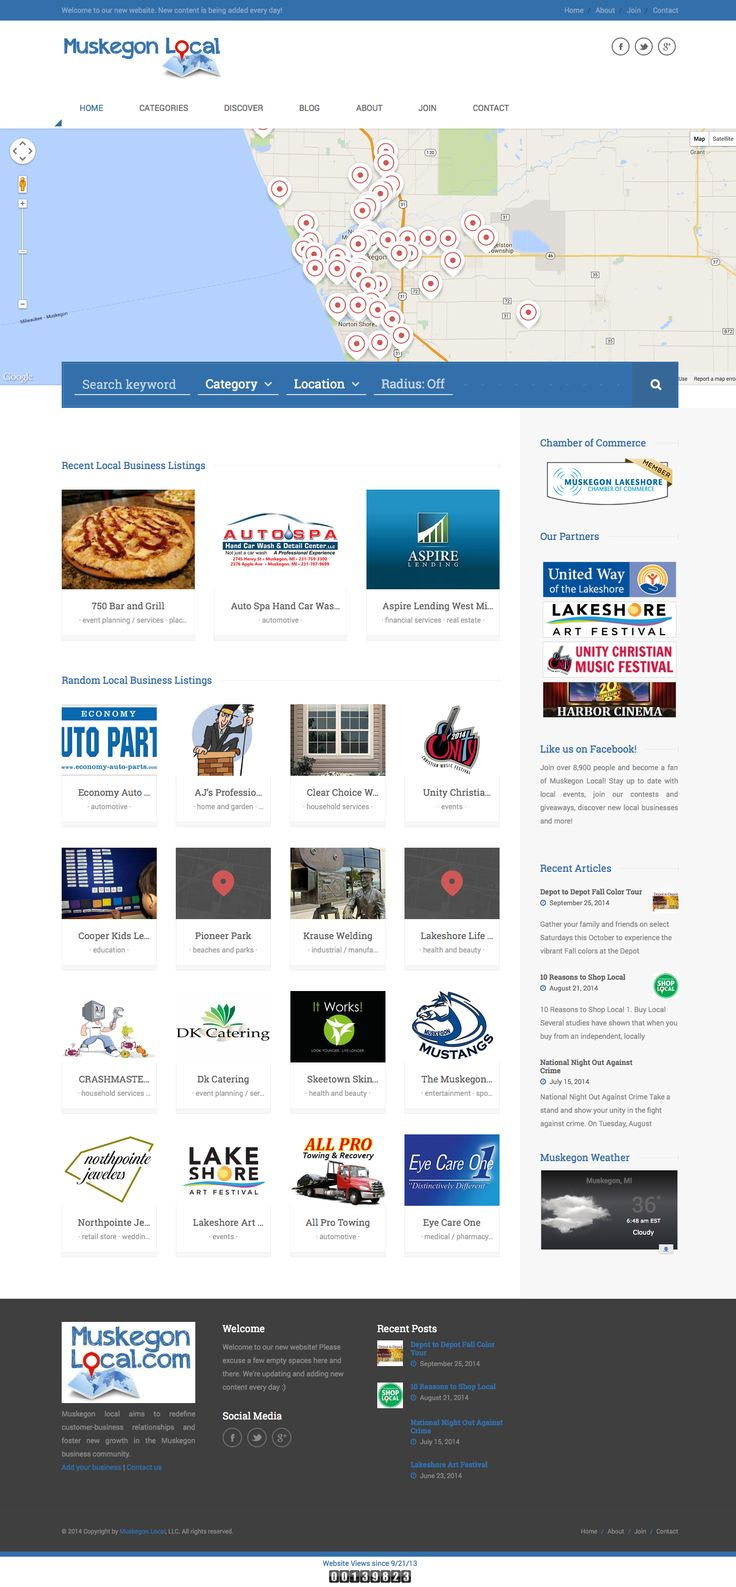 Join over 8,900 people and become a fan of Muskegon Local! Stay up to date with local events, join our contests and giveaways, discover new local businesses and more! More info at: http://muskegonlocal.com Used theme: CITY GUIDE